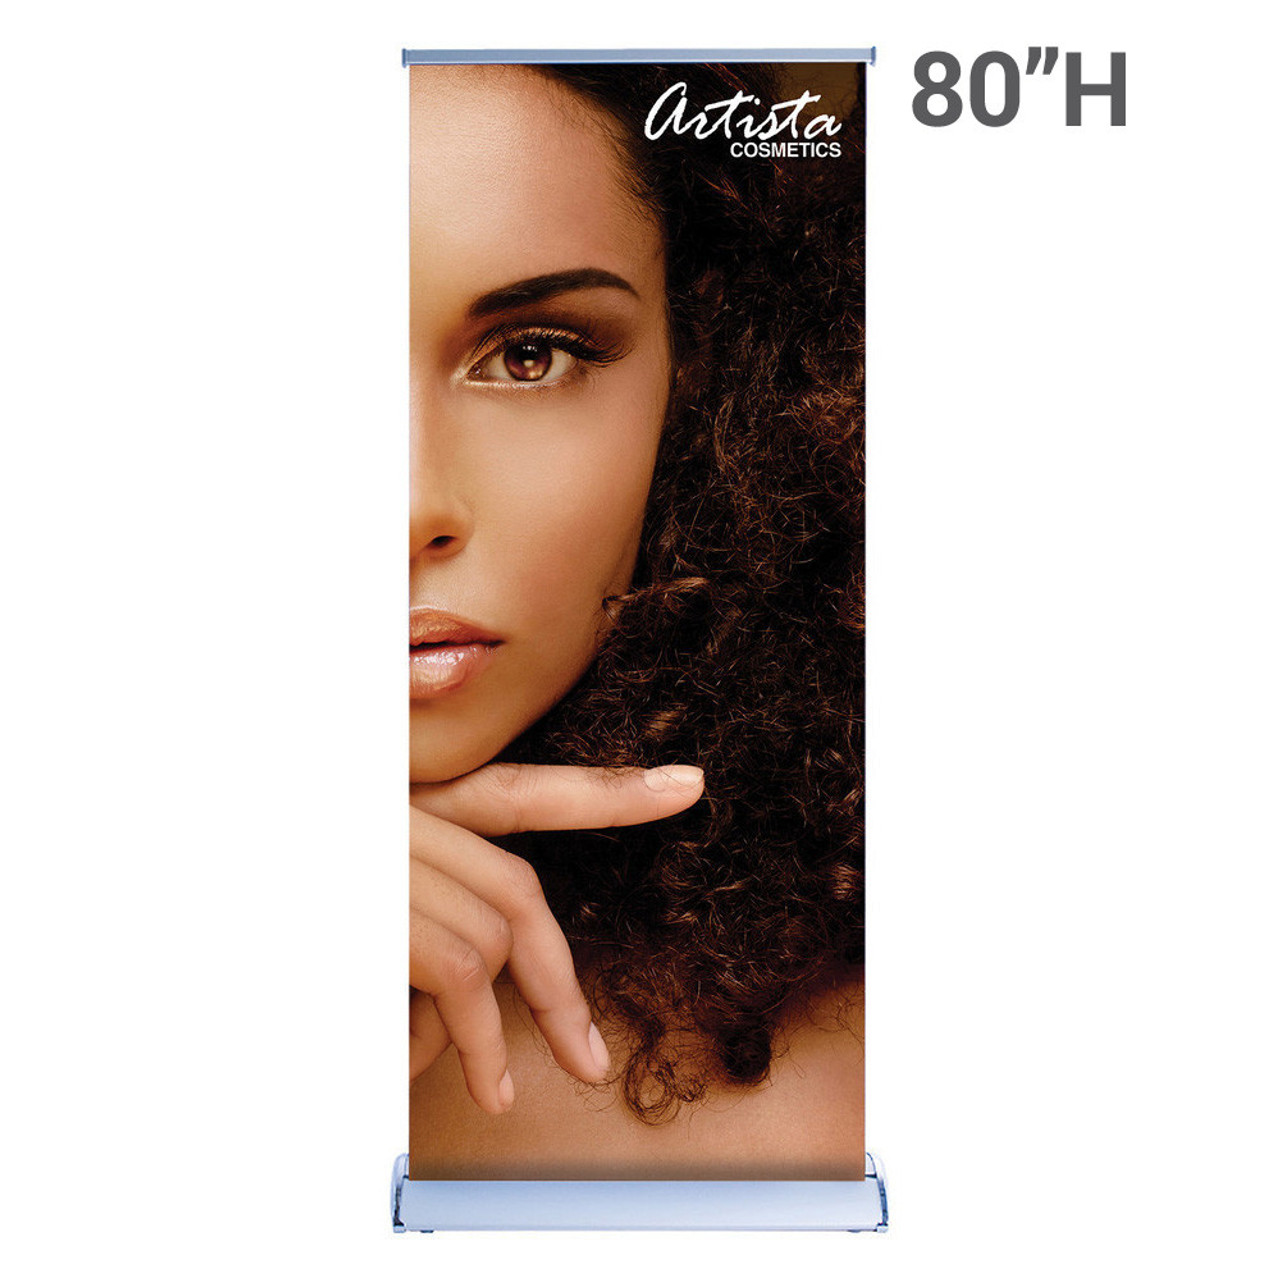 Silverwing retractable banner stand with super flat vinyl print